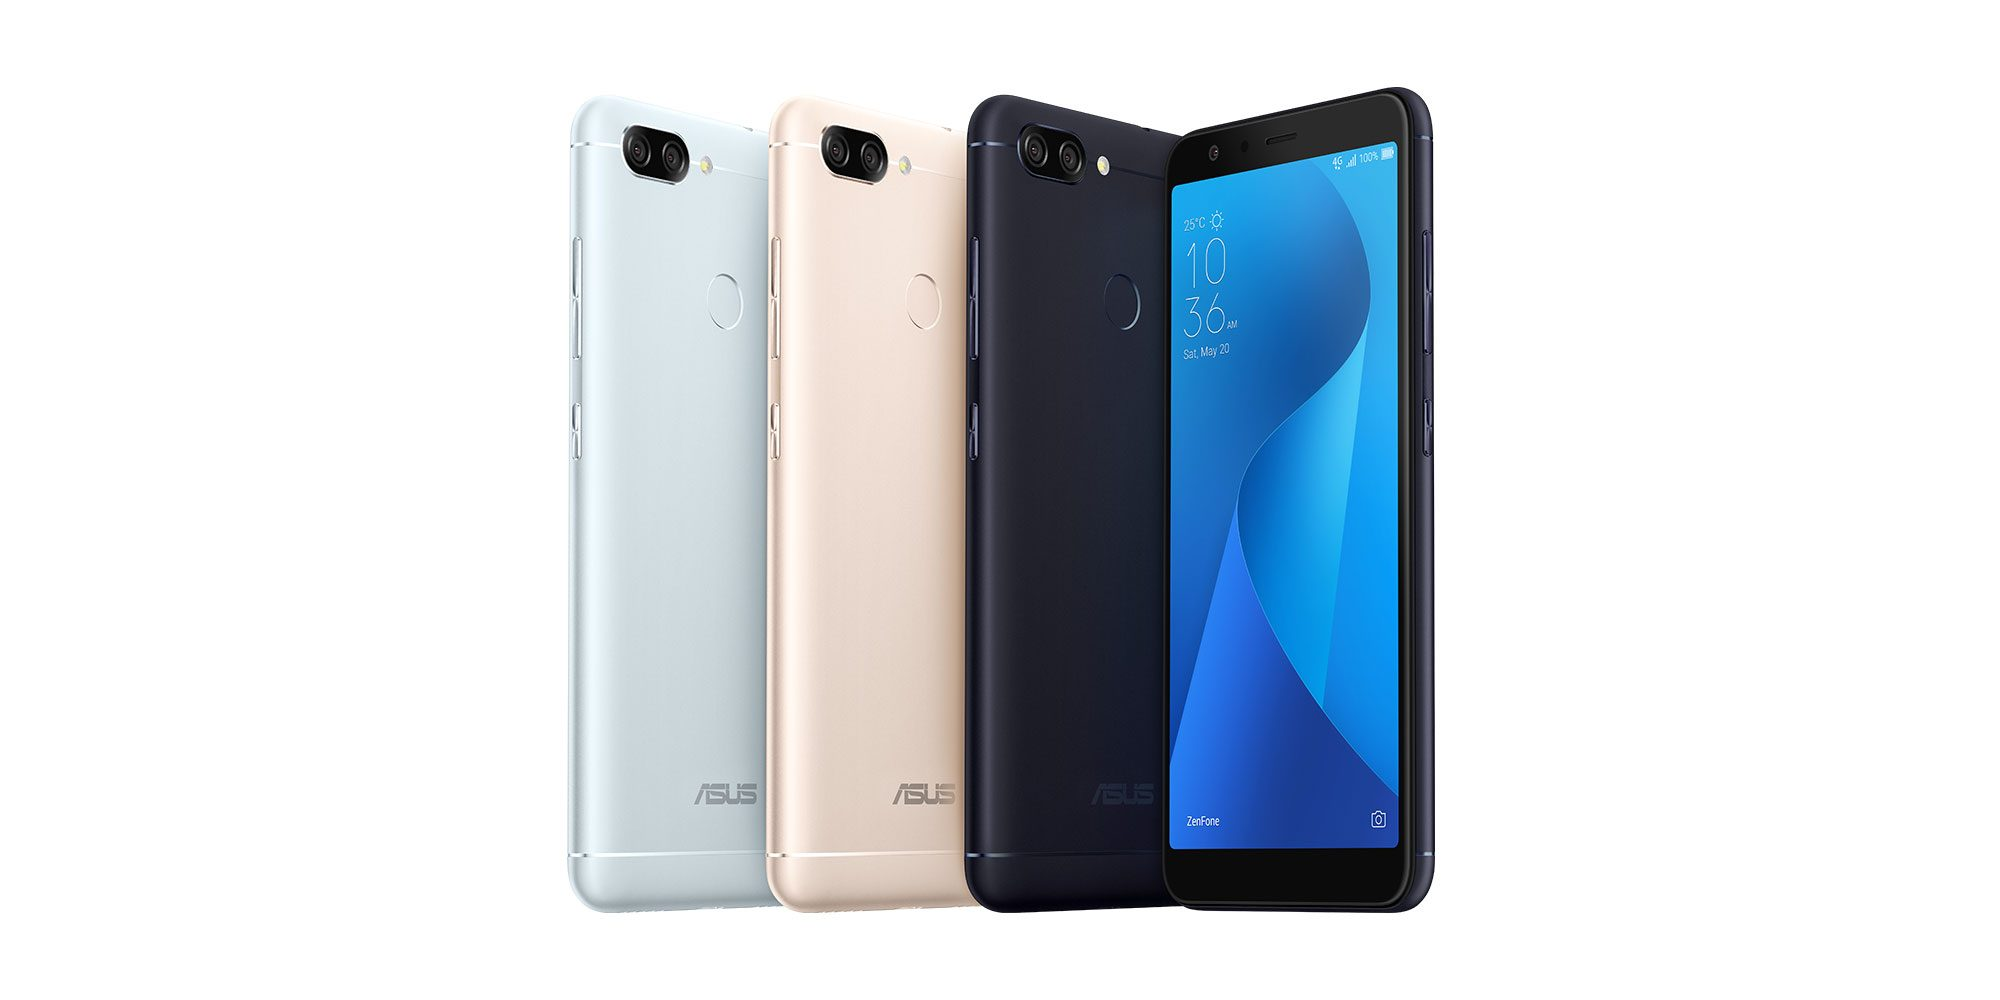 How to Root Asus Zenfone Max Plus with Magisk without TWRP